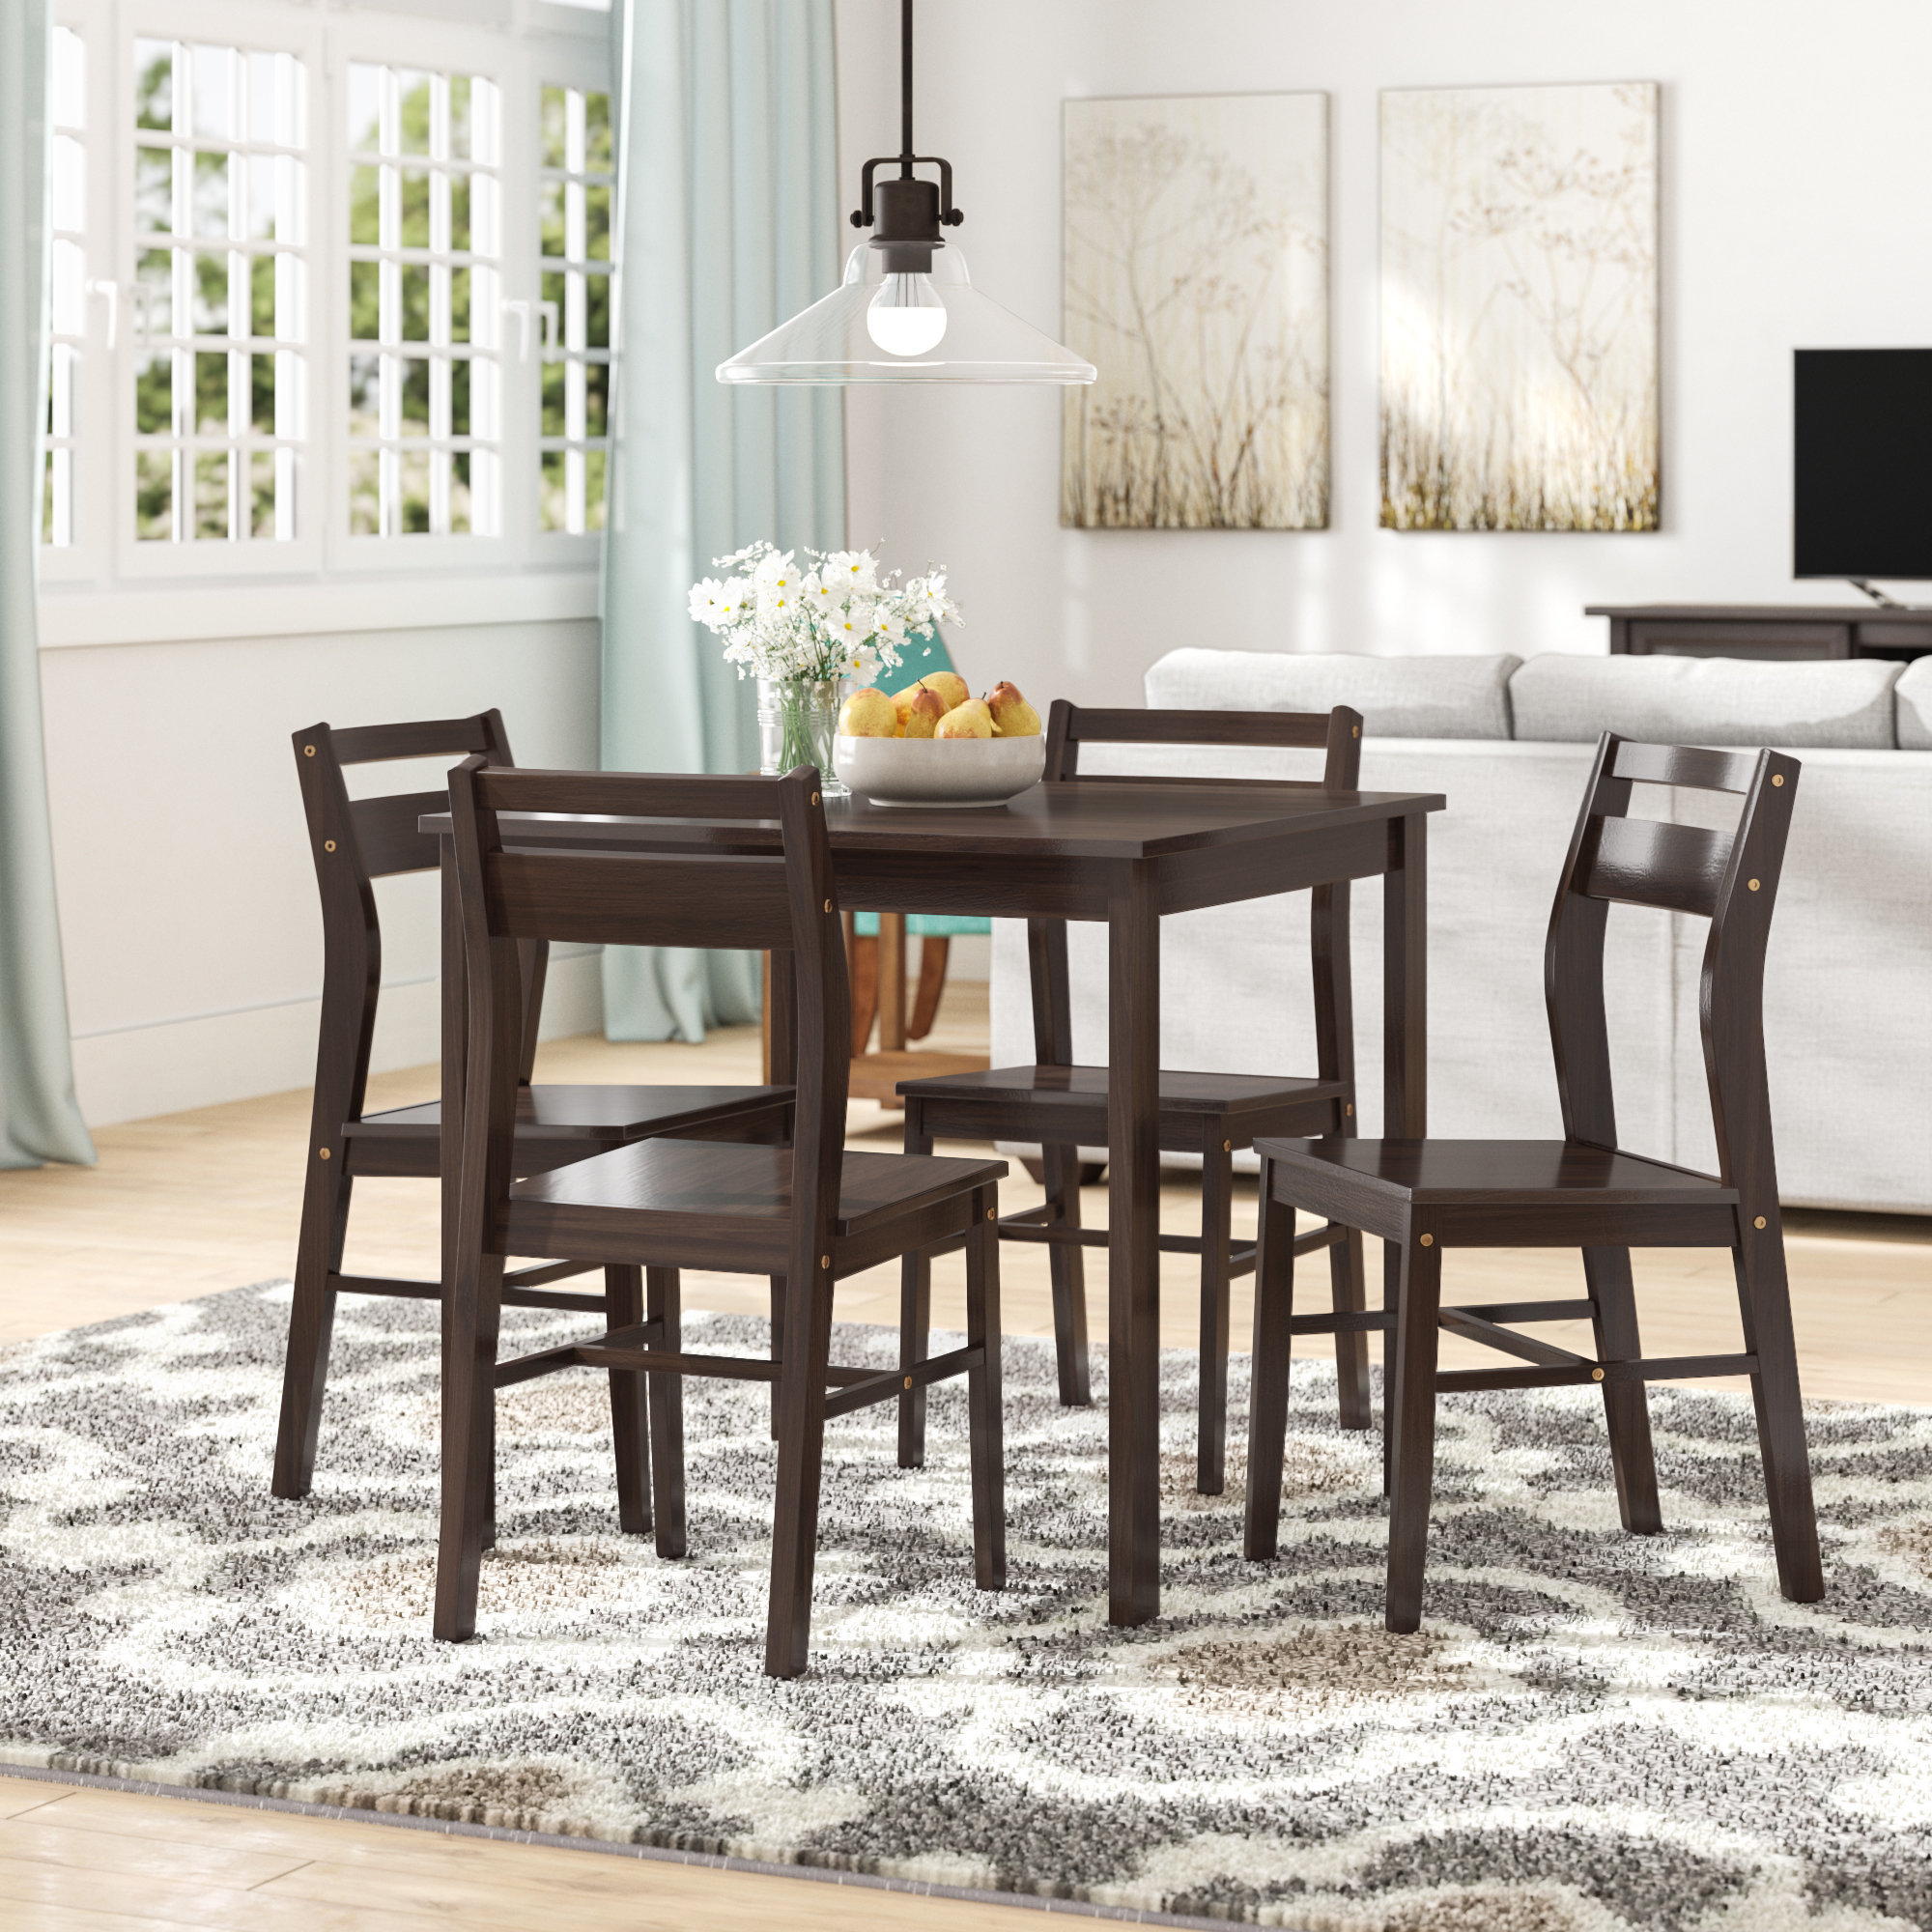 Most Recent Winston Porter Hersom 5 Piece Dining Set & Reviews (View 20 of 20)